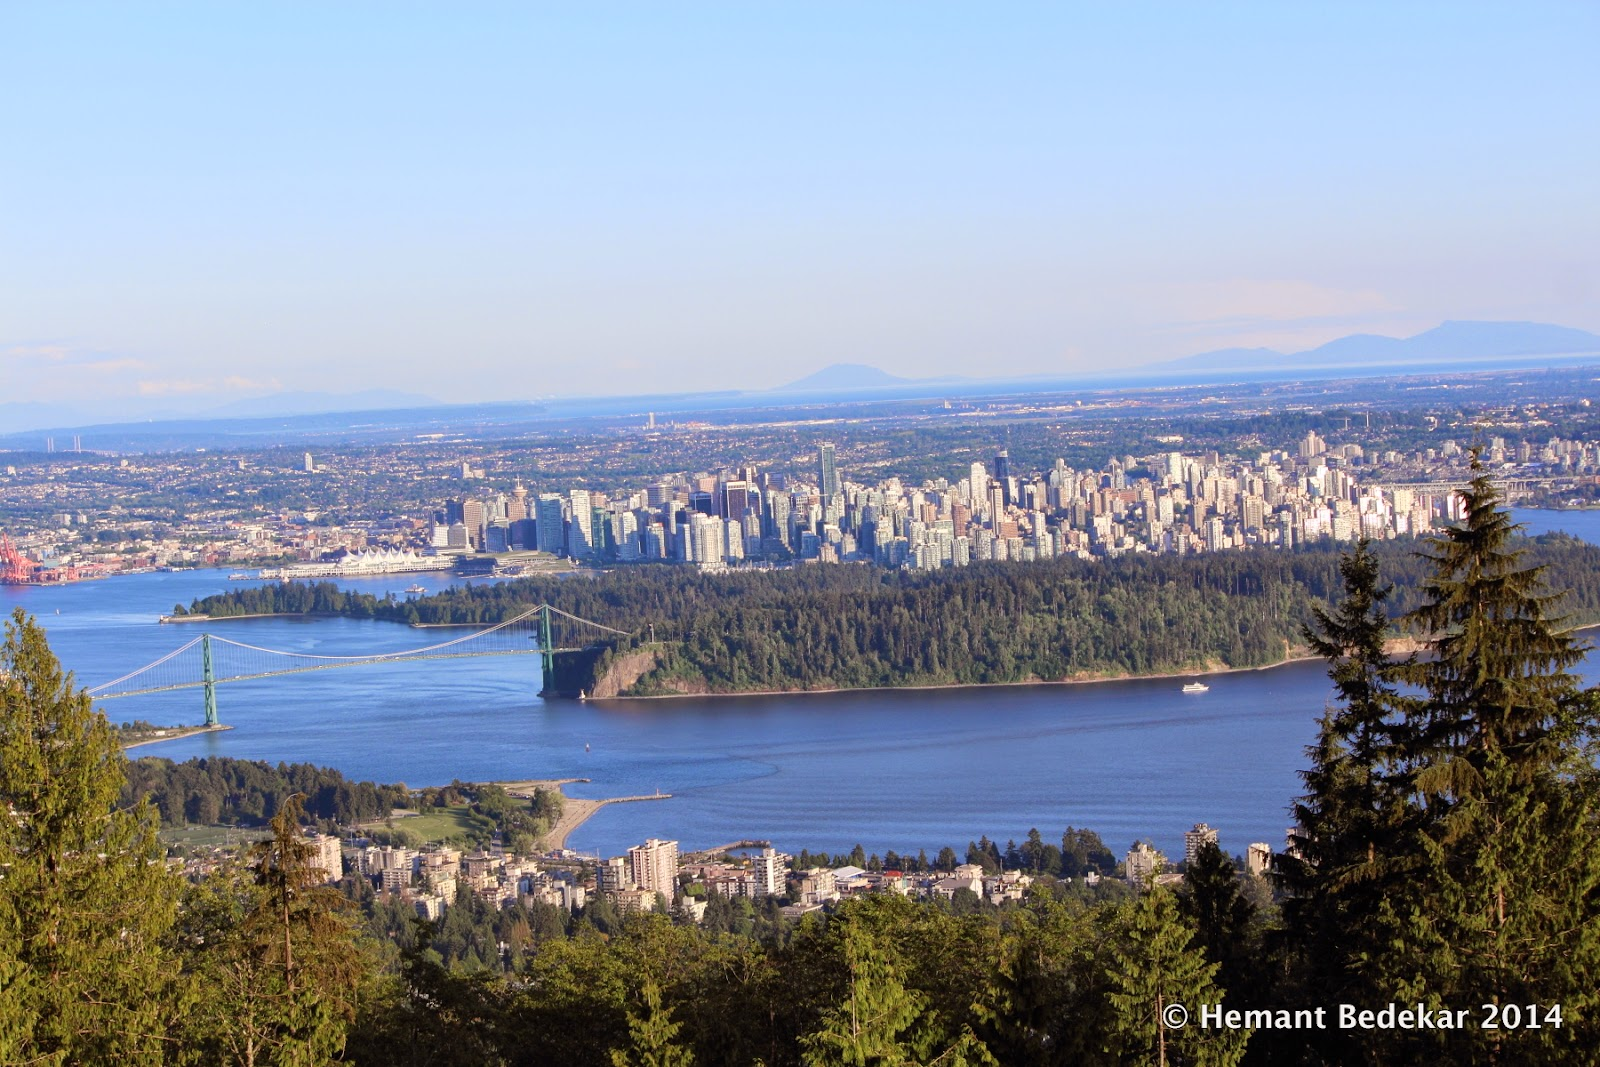 Lions Gate Bridge and downtown Vancouver photographed from Cypress Mountain